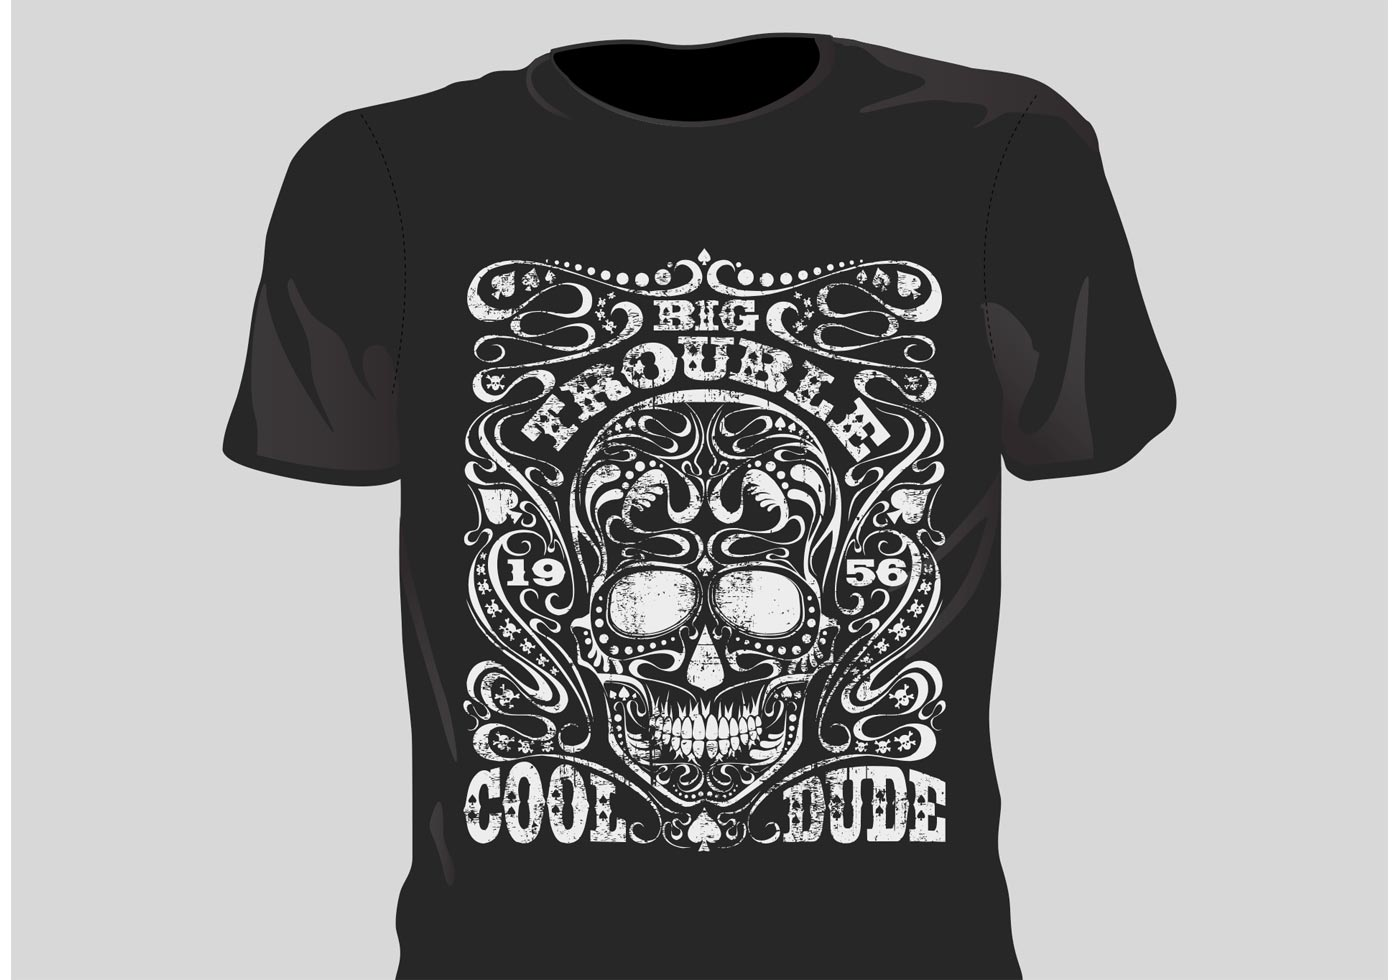 Free Grunge T Shirt Designs - Download Free Vector Art, Stock ...